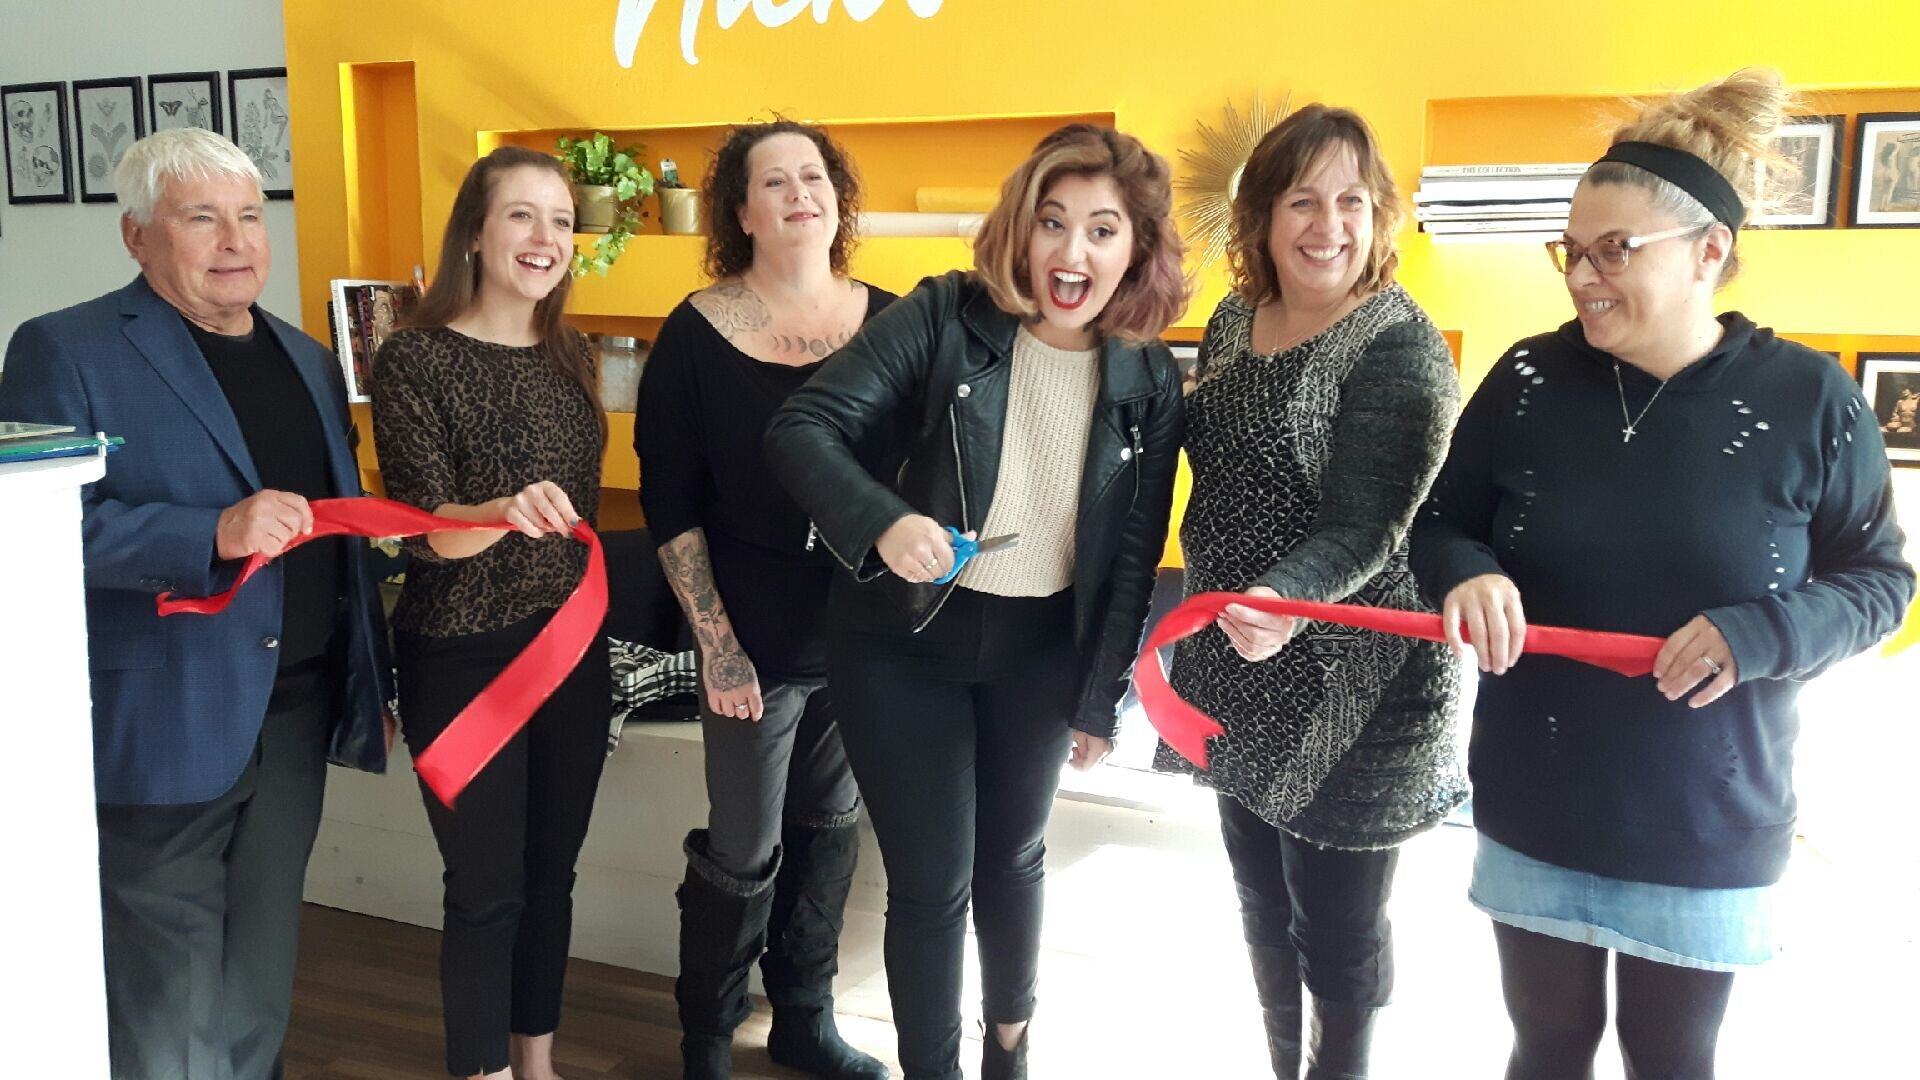 From left, Port Hope Deputy Mayor Les Andrews, MPP representative Paige Wiggins, Nick's staffer Gerry Barnes and owner Nickola Pandelides, HBIA manager Jamie Byers and Port Hope & District Chamber of Commerce representative Maria Papaidannoy-Duk cut the ribbon at Nick's grand opening Friday